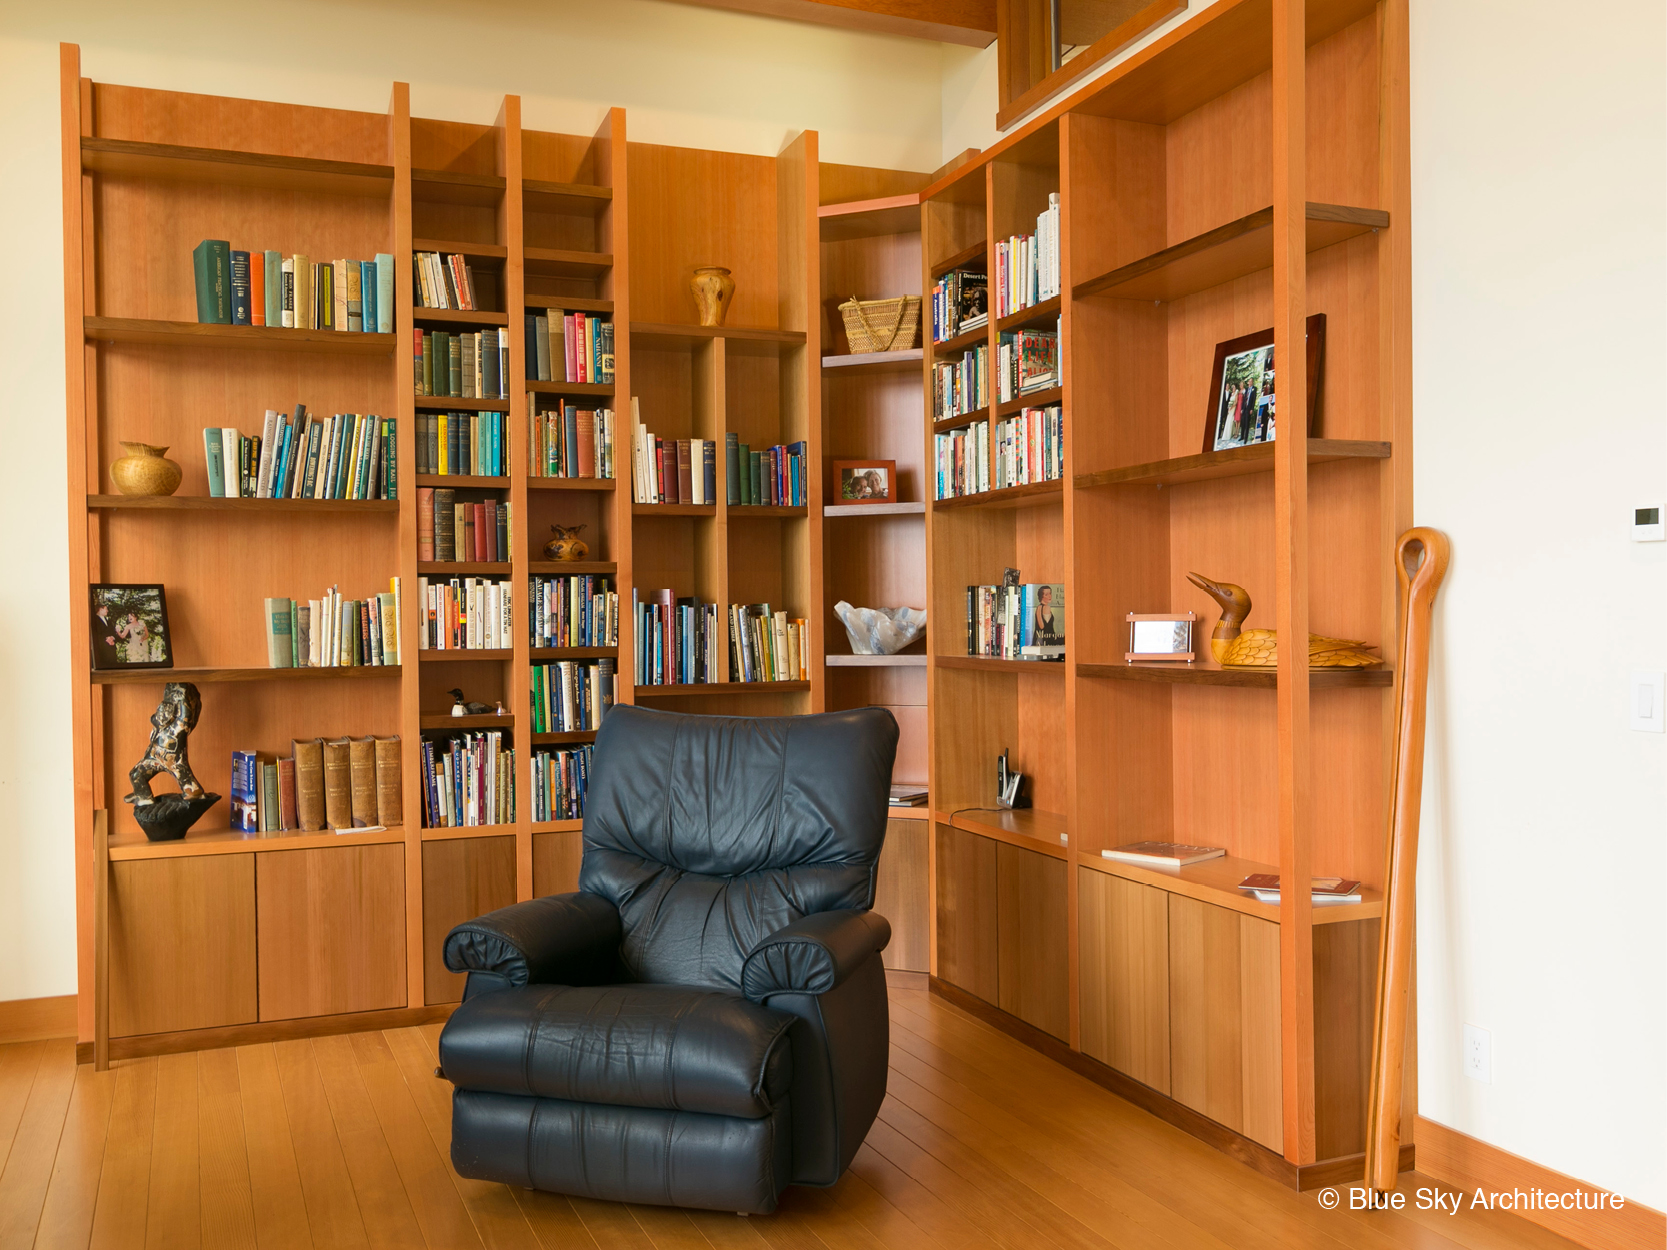 Douglas fir bookshelves in West Coast Modern residence